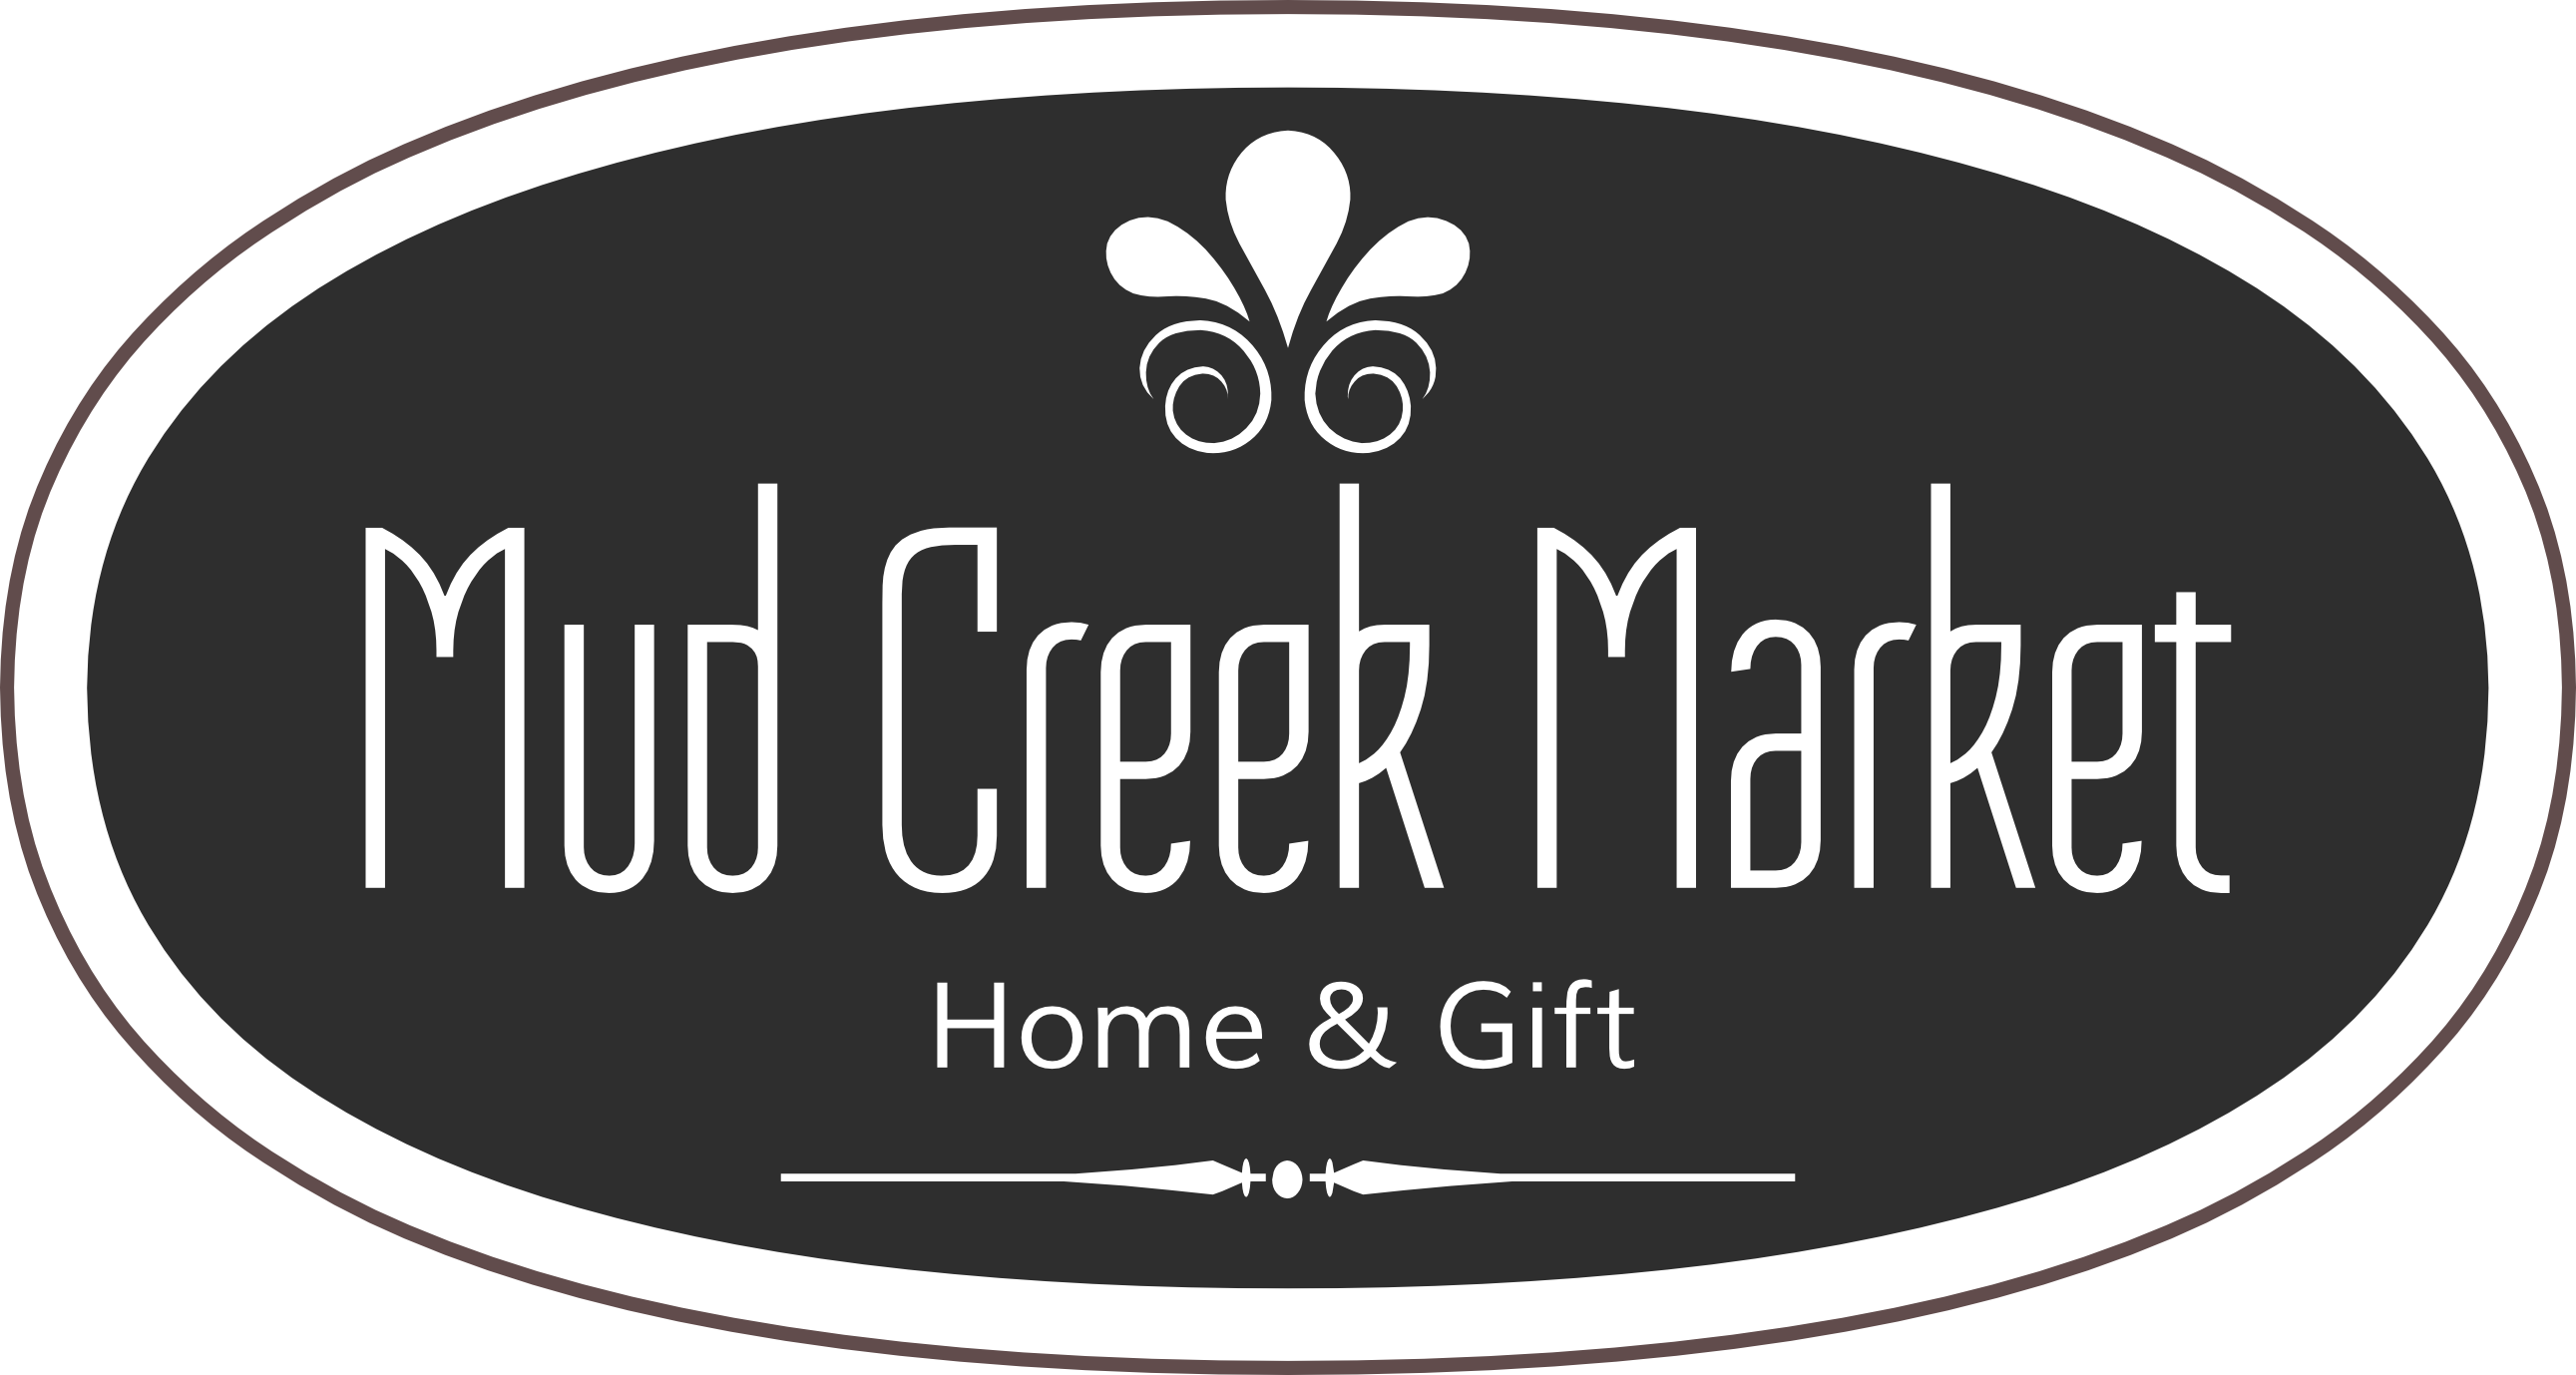 Mud Creek